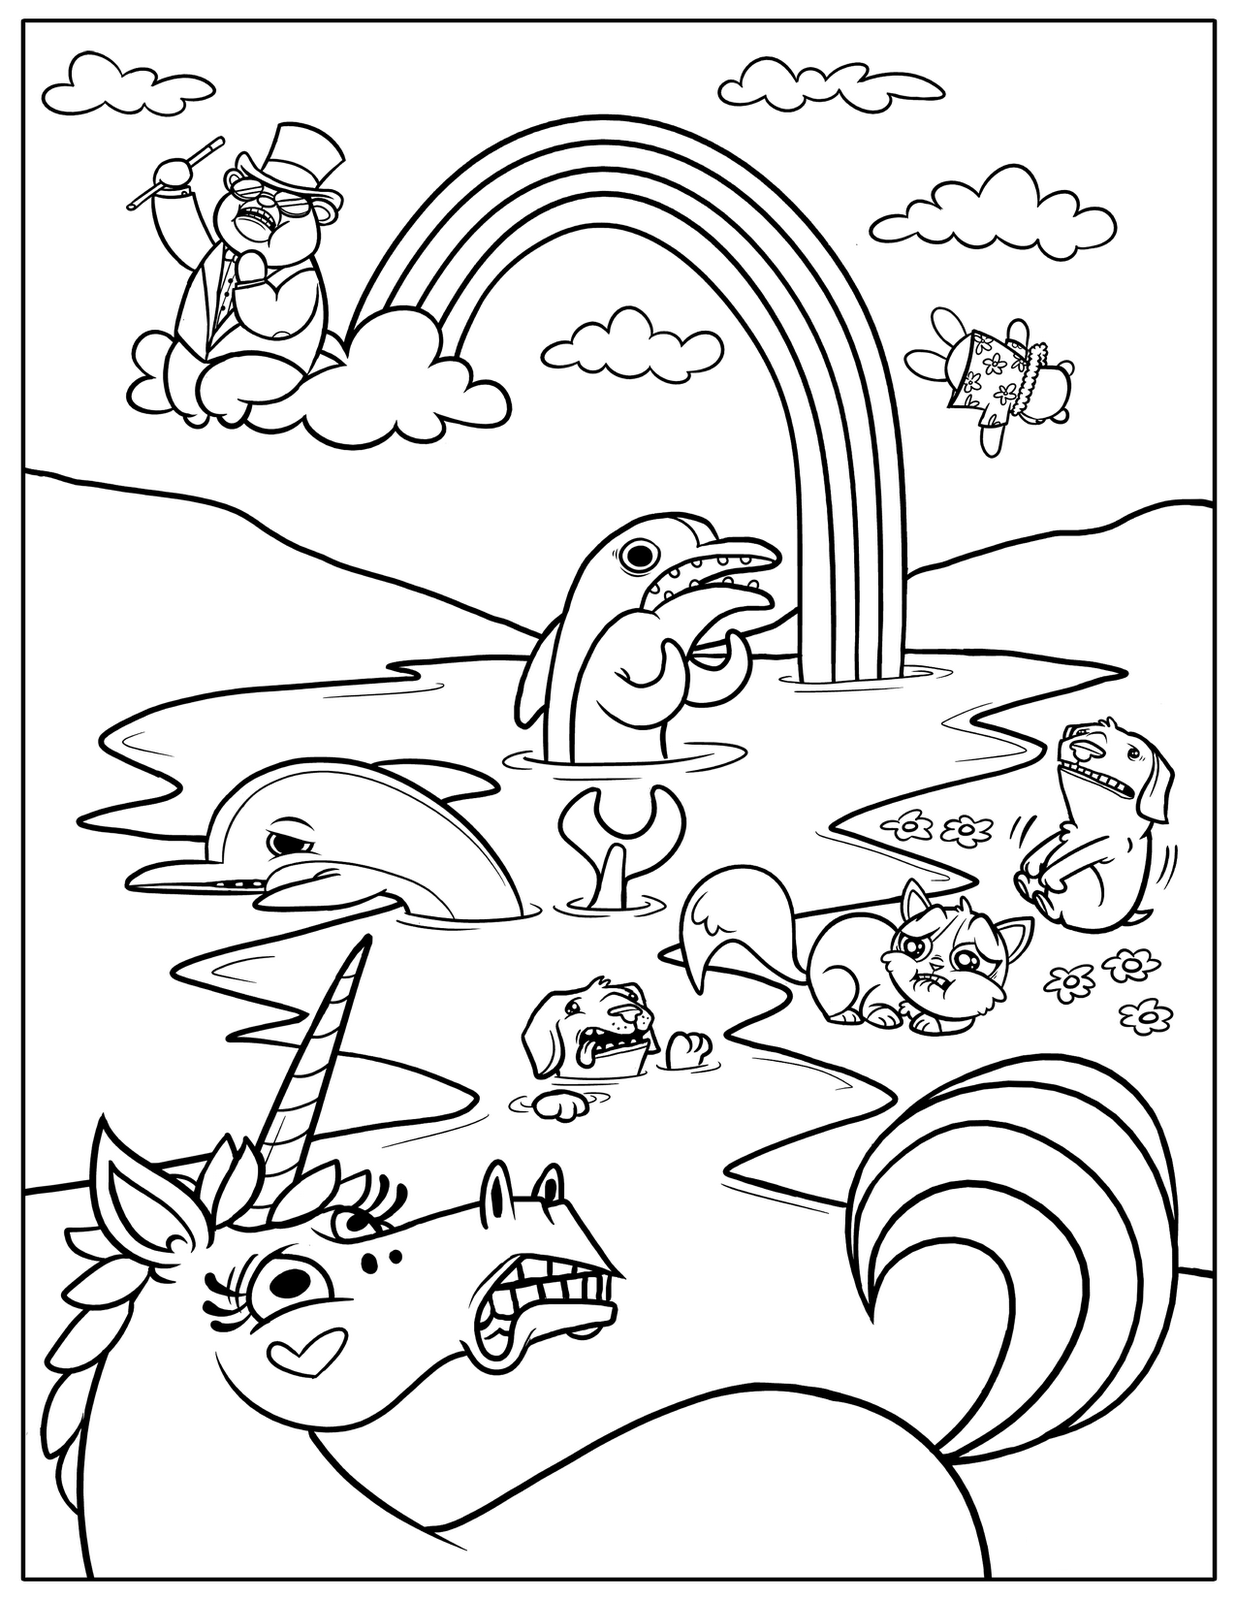 coloring book for kinder colouring worksheets for kindergarten free printable